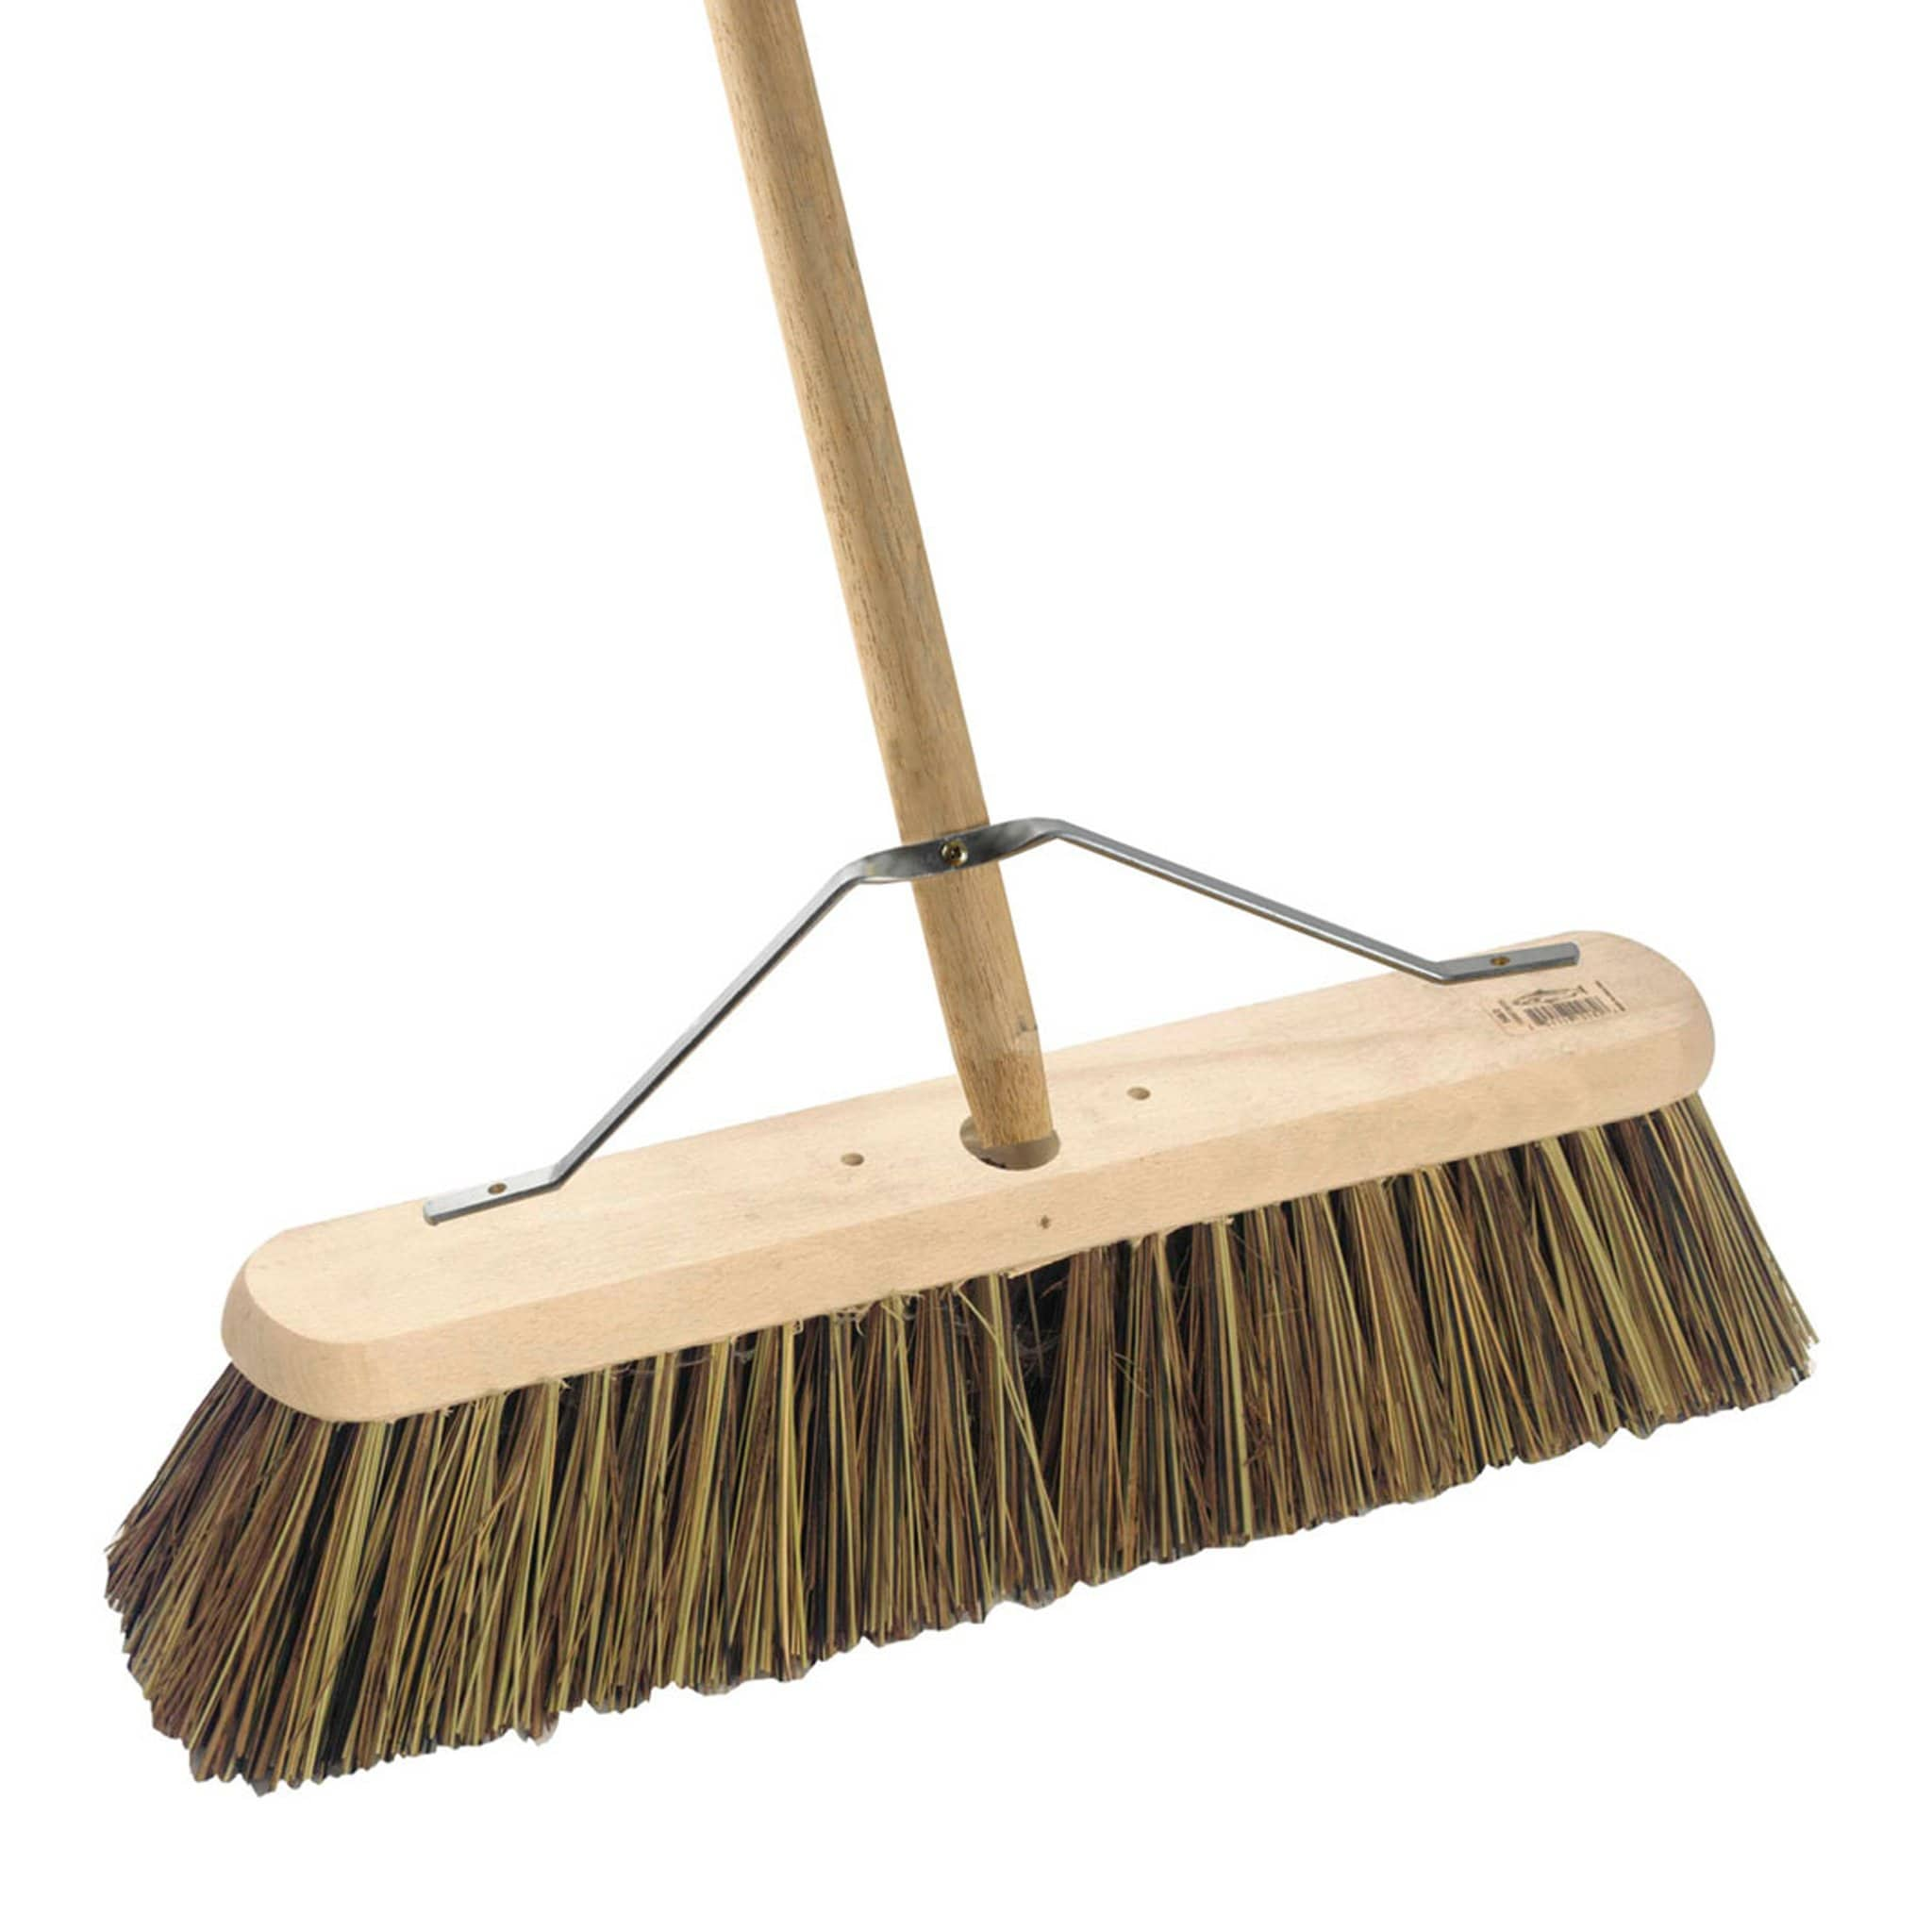 Hillbrush Platform Broom With Handle And Stay